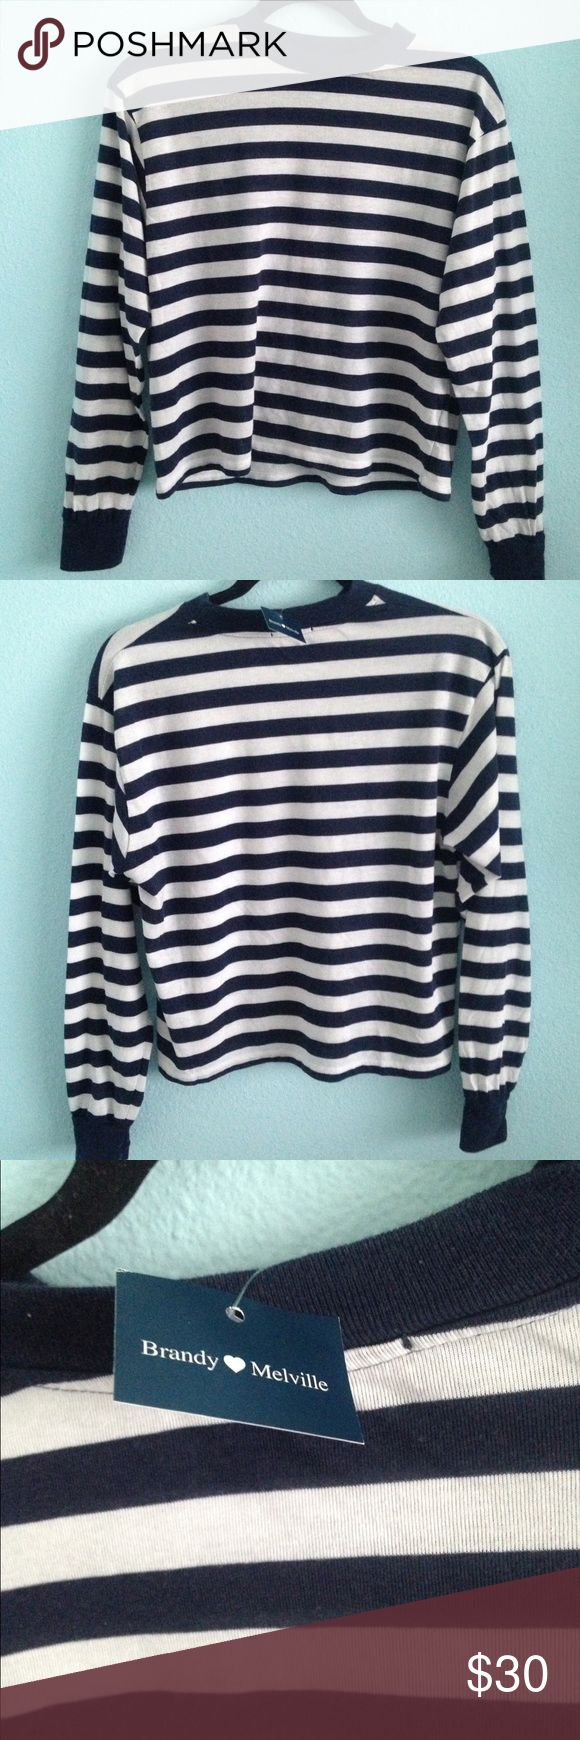 Blue and white striped long sleeve Gretchen top Brand new with tags. Never been worn. Can fit anysize. The style is called Gretchen top. Brandy Melville Tops Tees - Long Sleeve